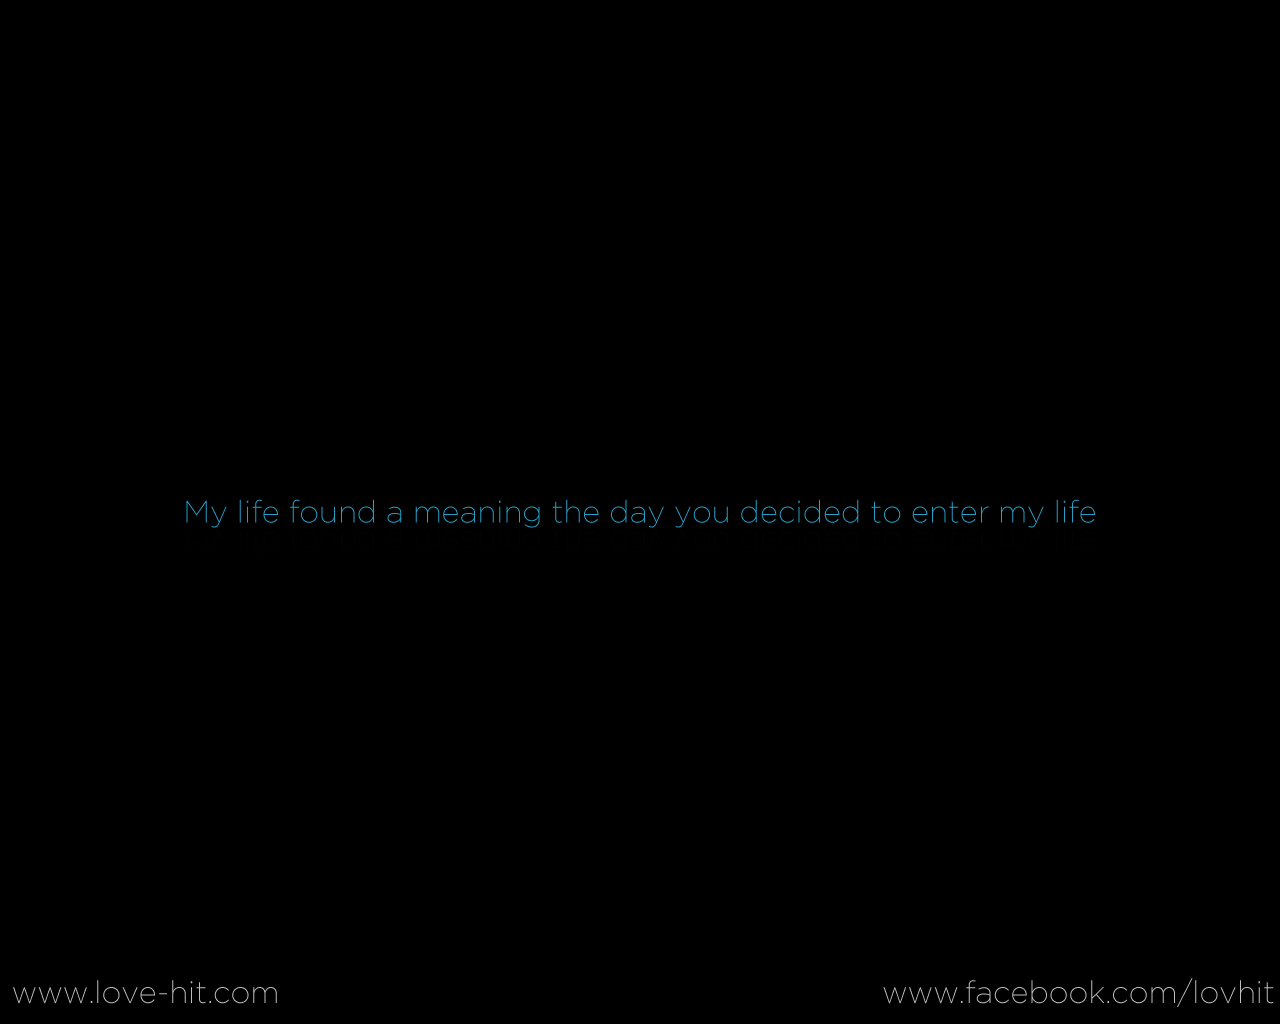 My life found a meaning the day you decided to enter my life